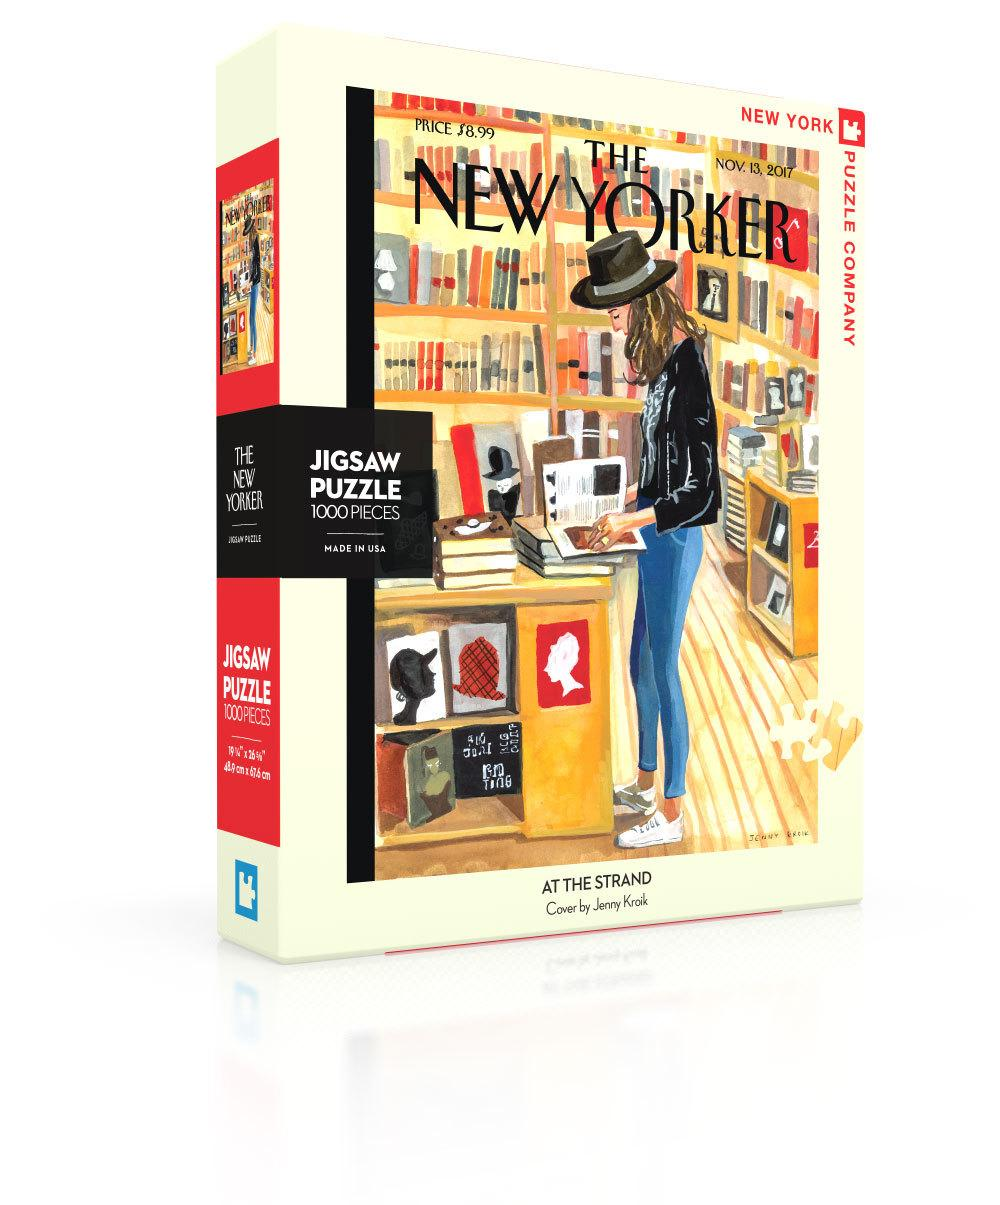 New Yorker Jigsaw Puzzle: At The Strand Cover (1000 pieces)